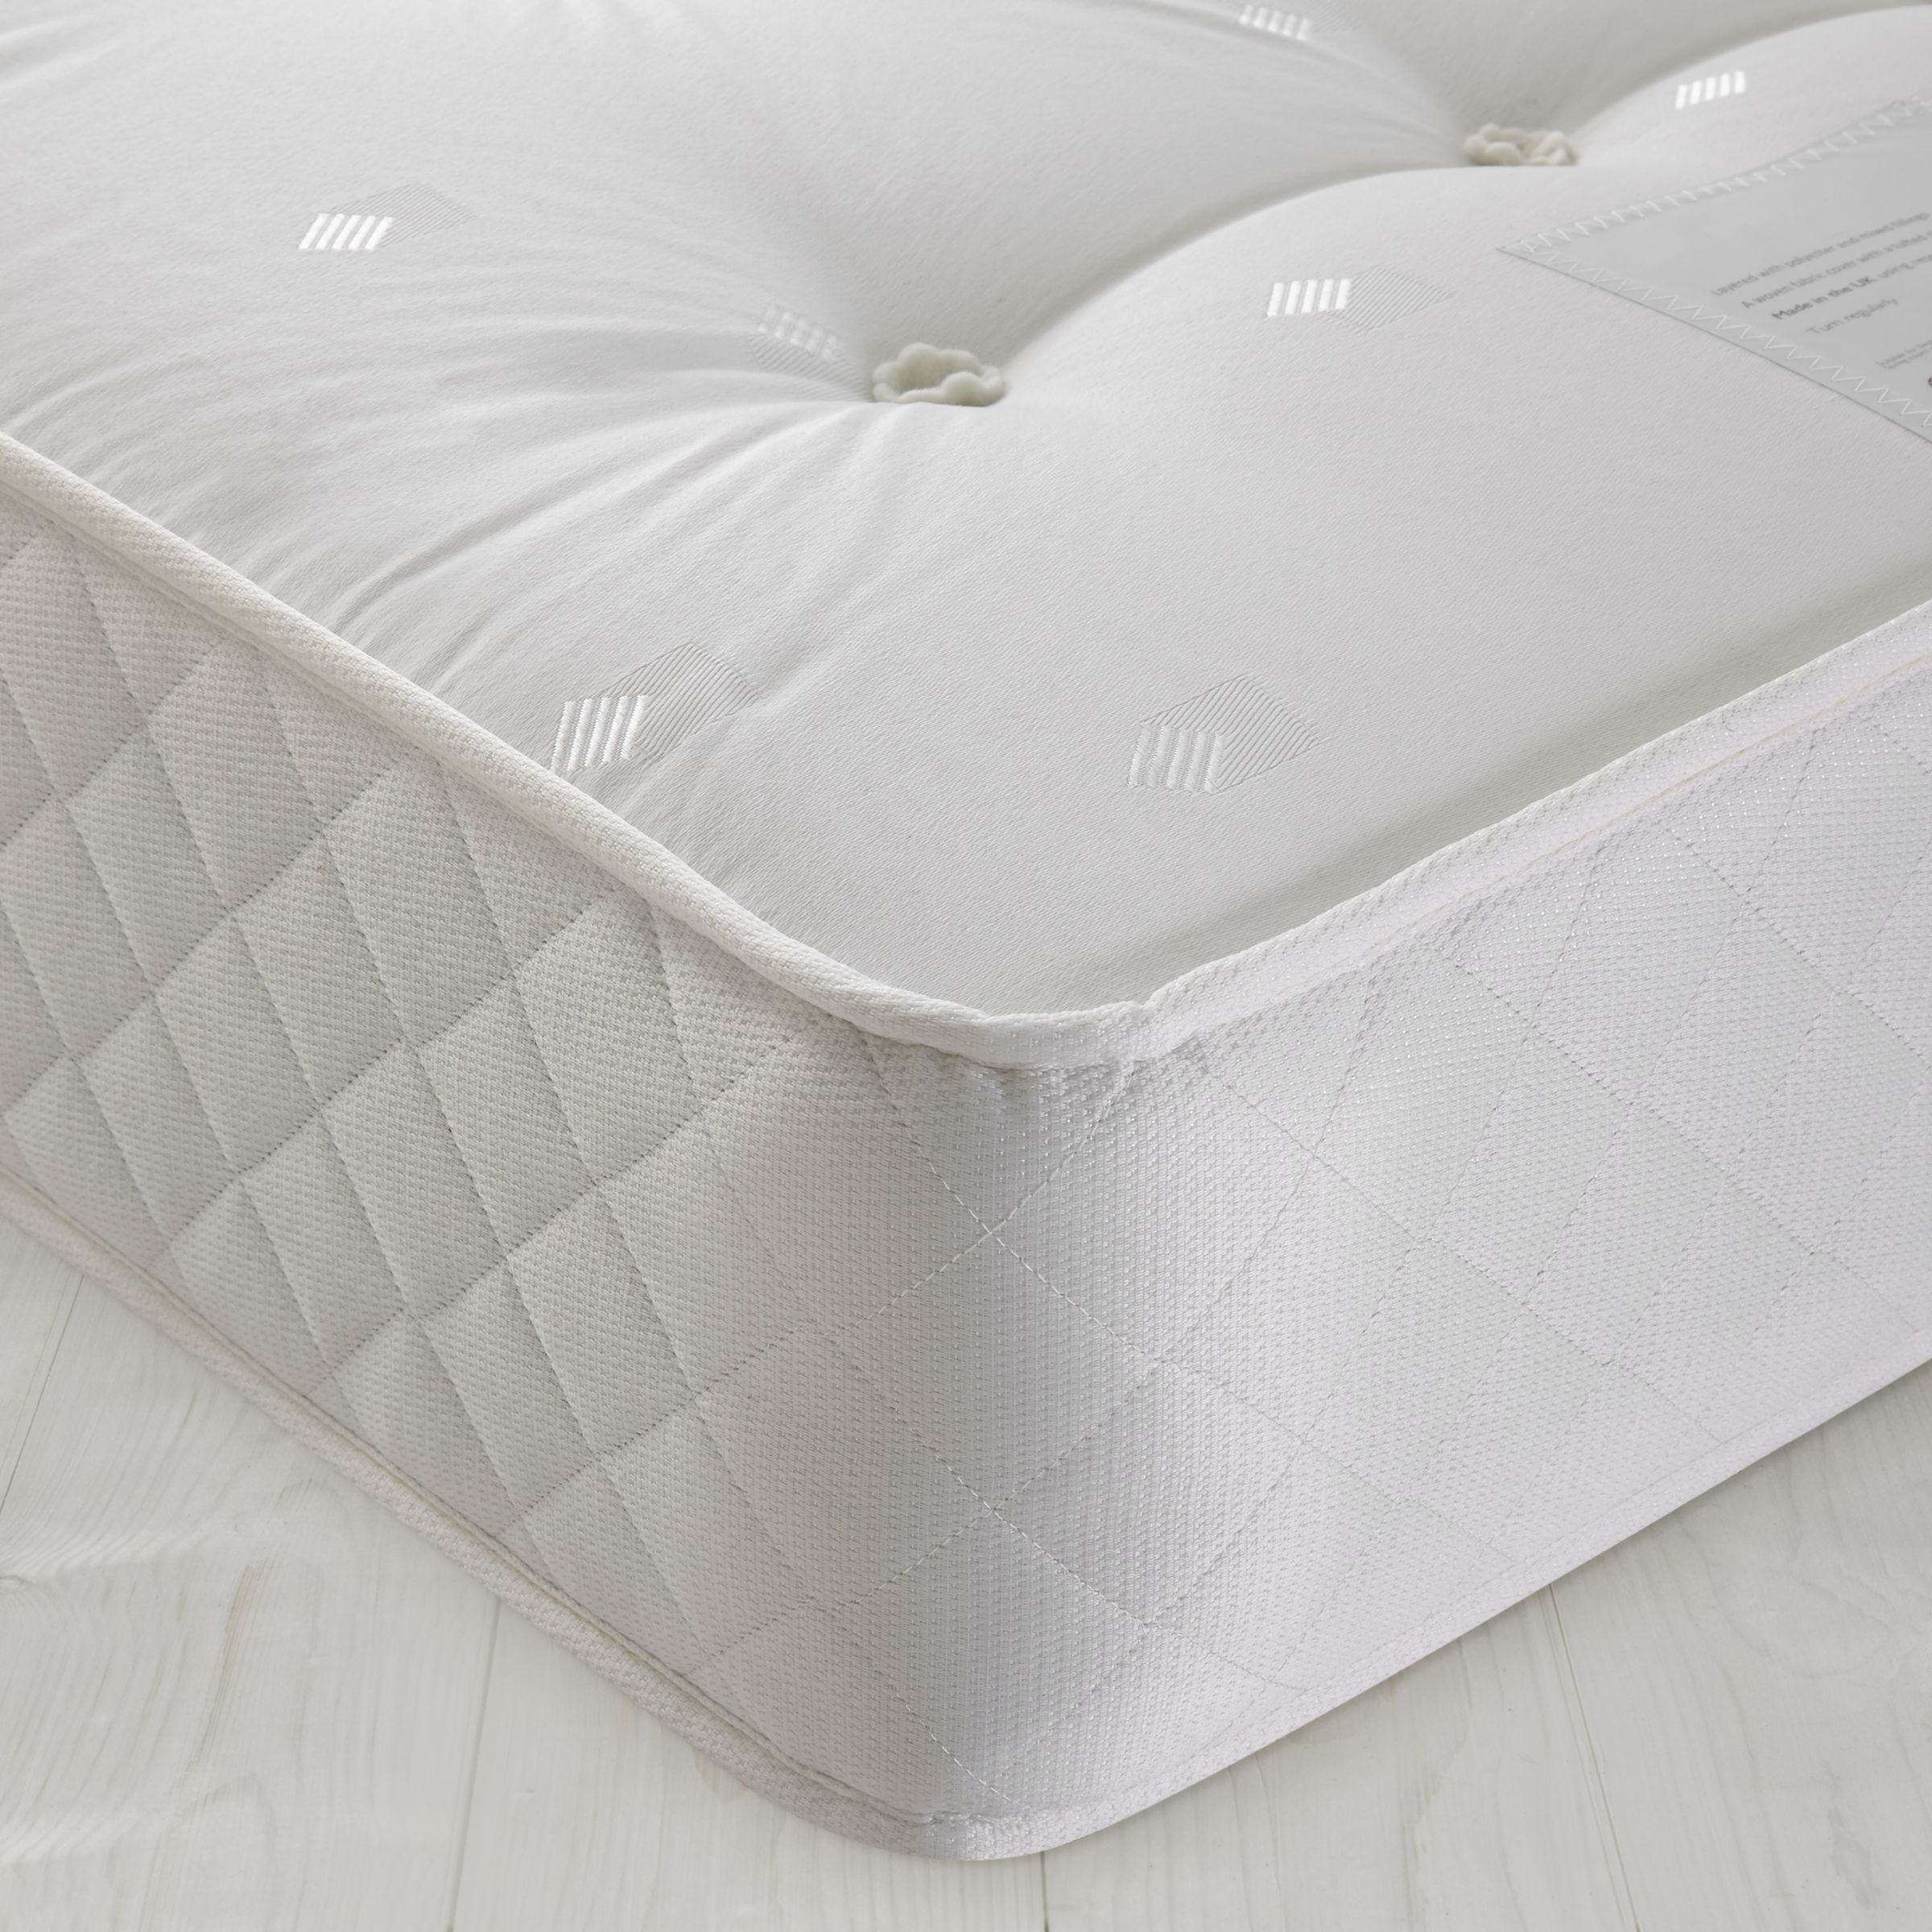 John Lewis Open 325 Comfort Mattress, Single